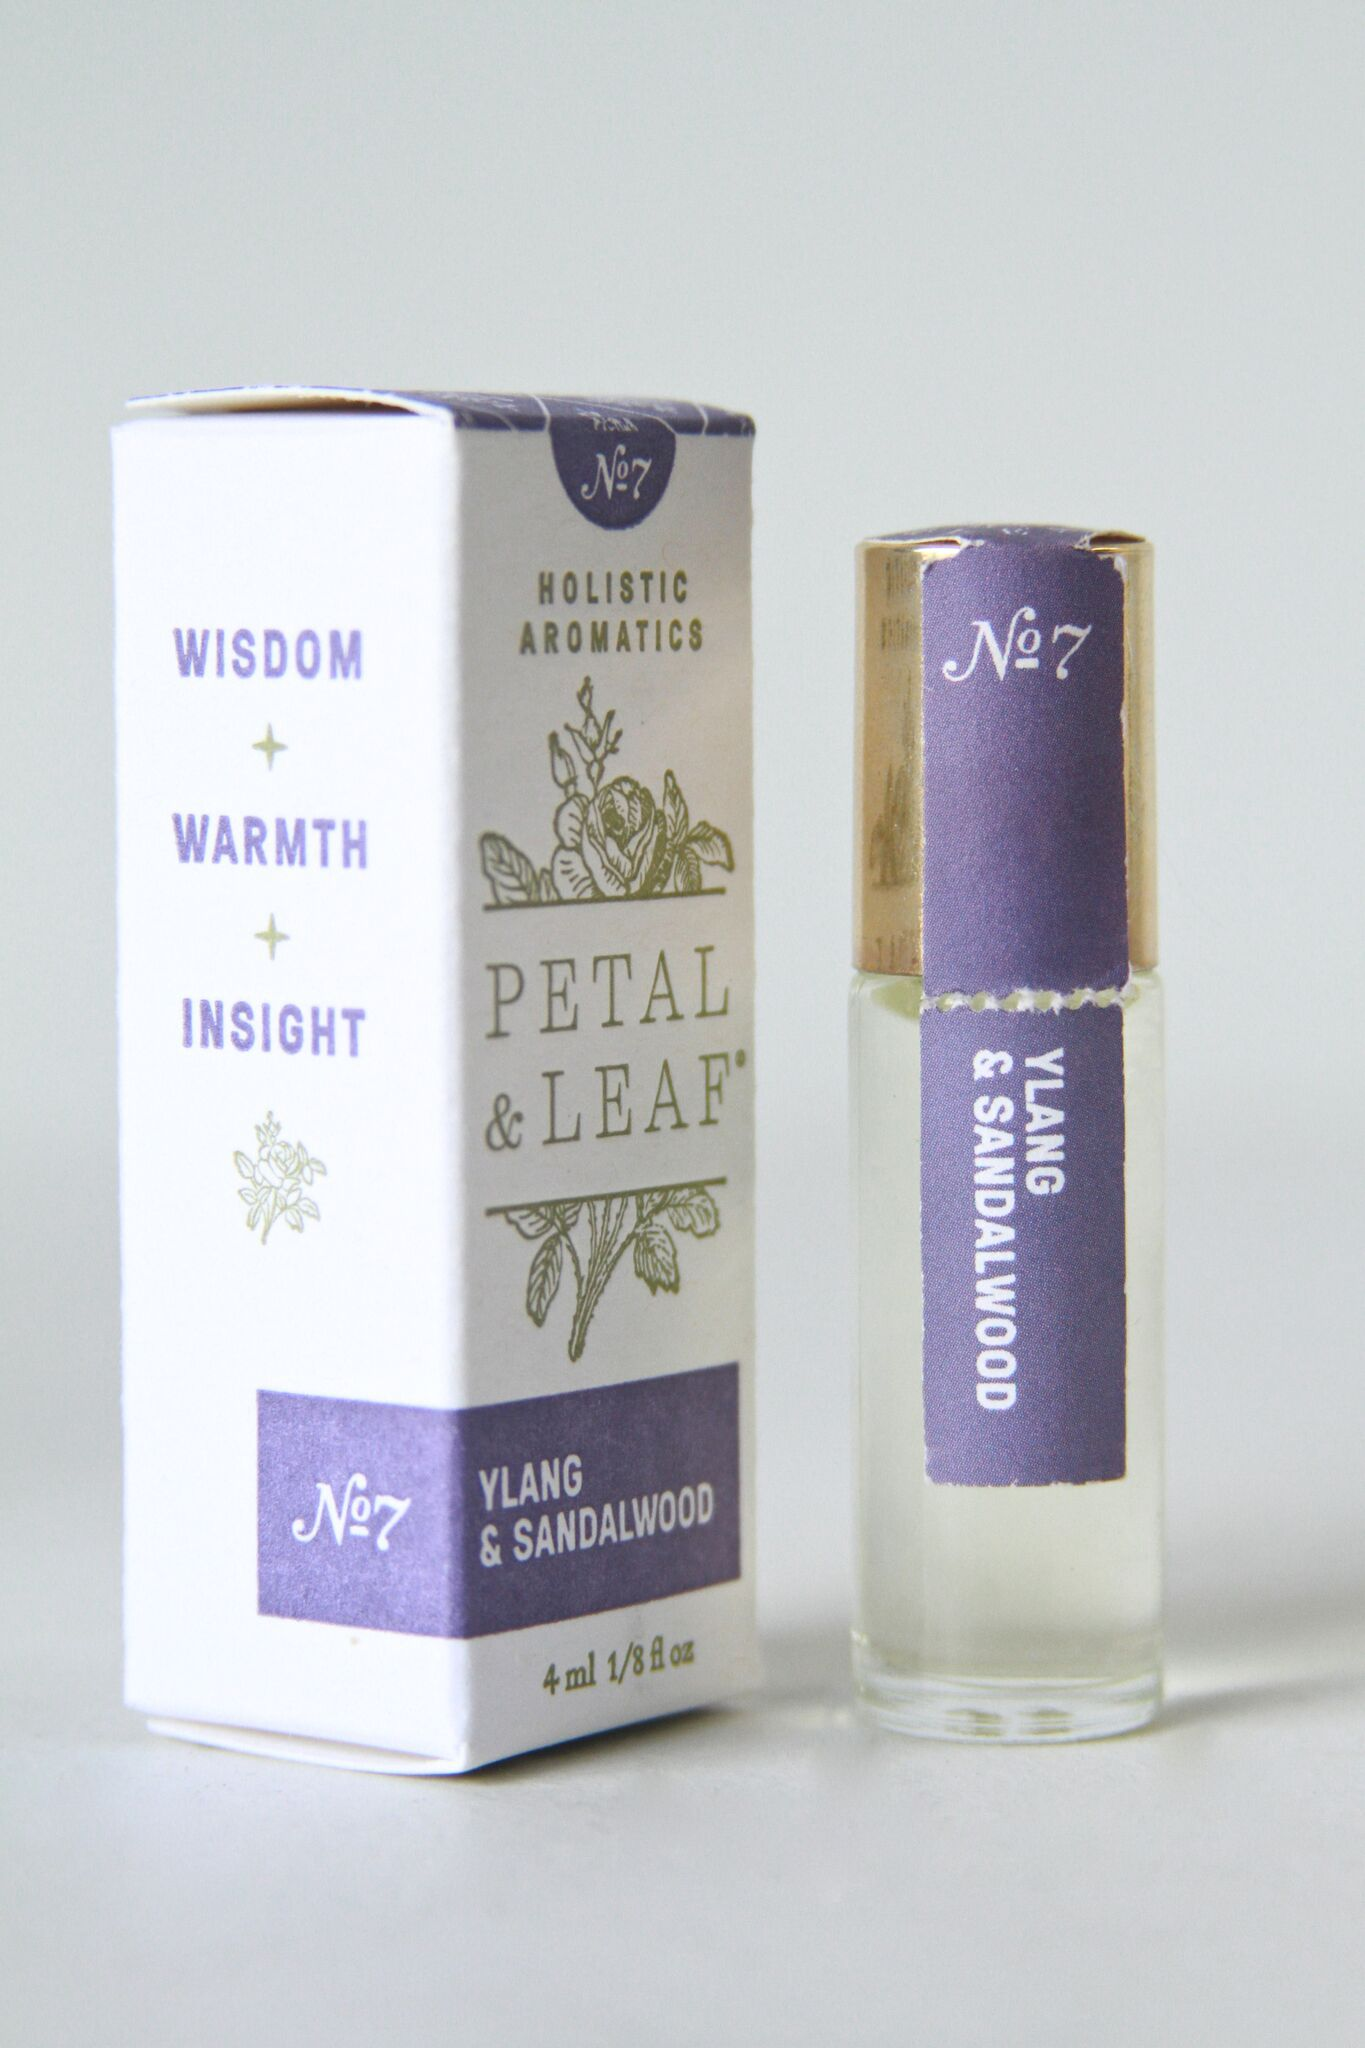 Holistic Aromatics Ylang & Sandalwood Perfume Roll On